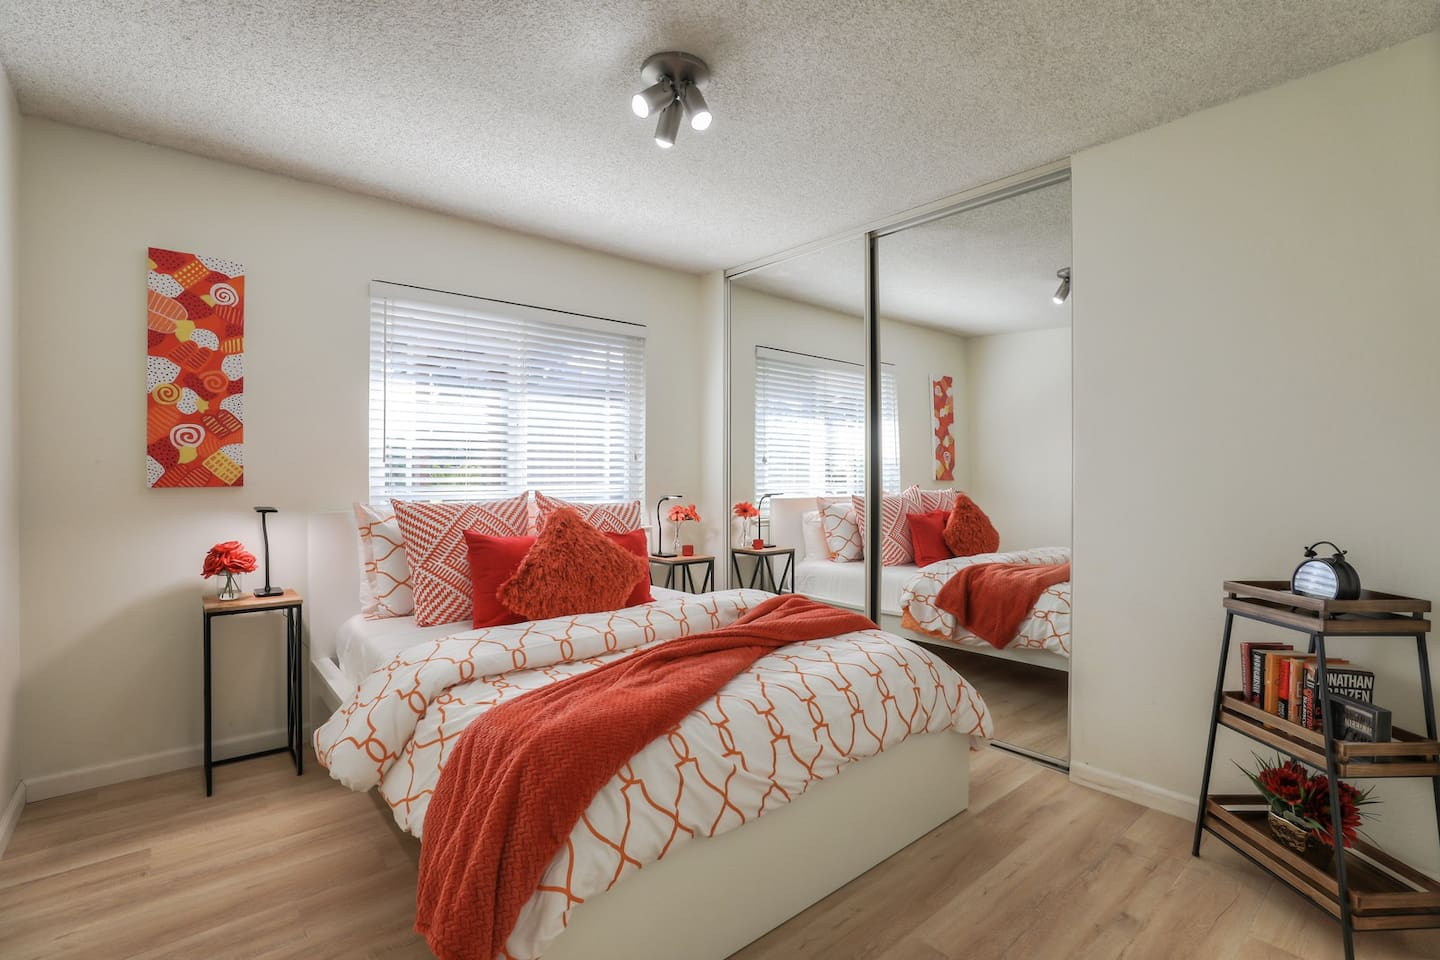 The second bedroom is bright and welcoming, with a queen size bed and large closet.